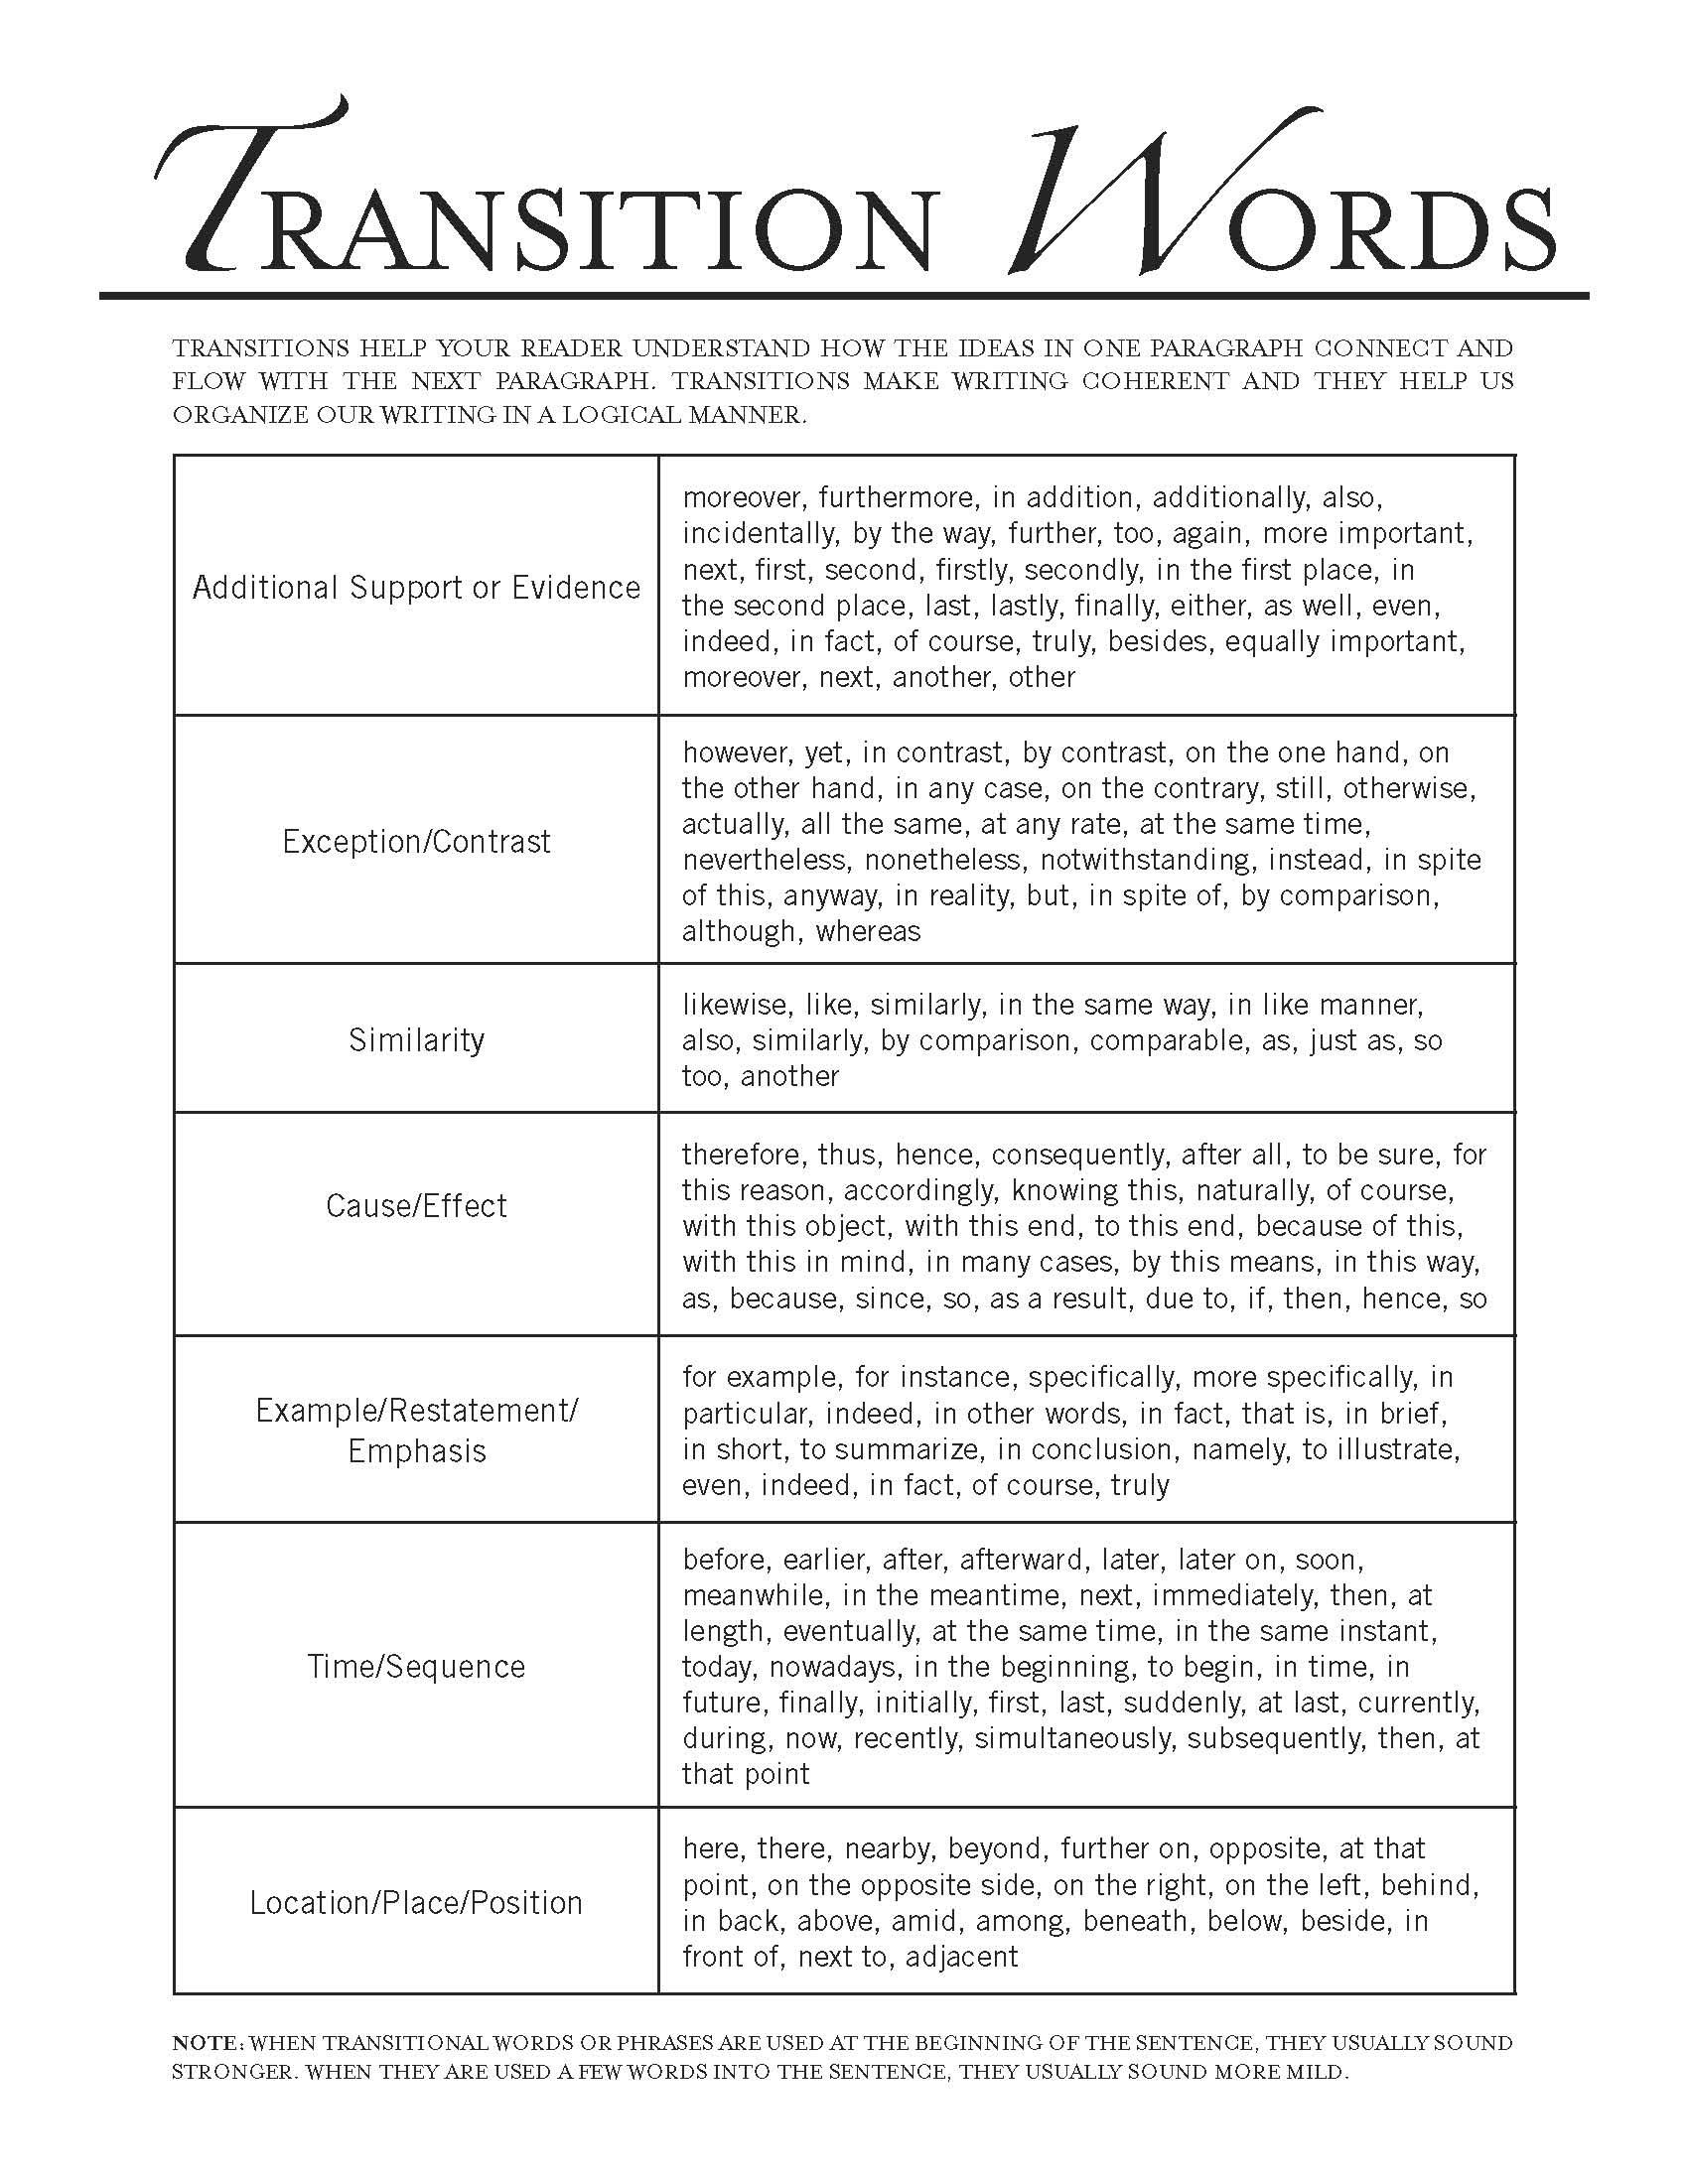 001 Transition Words And Phrases For Essays Essay Amazing Opinion Writing Narrative 5th Grade Expository Full